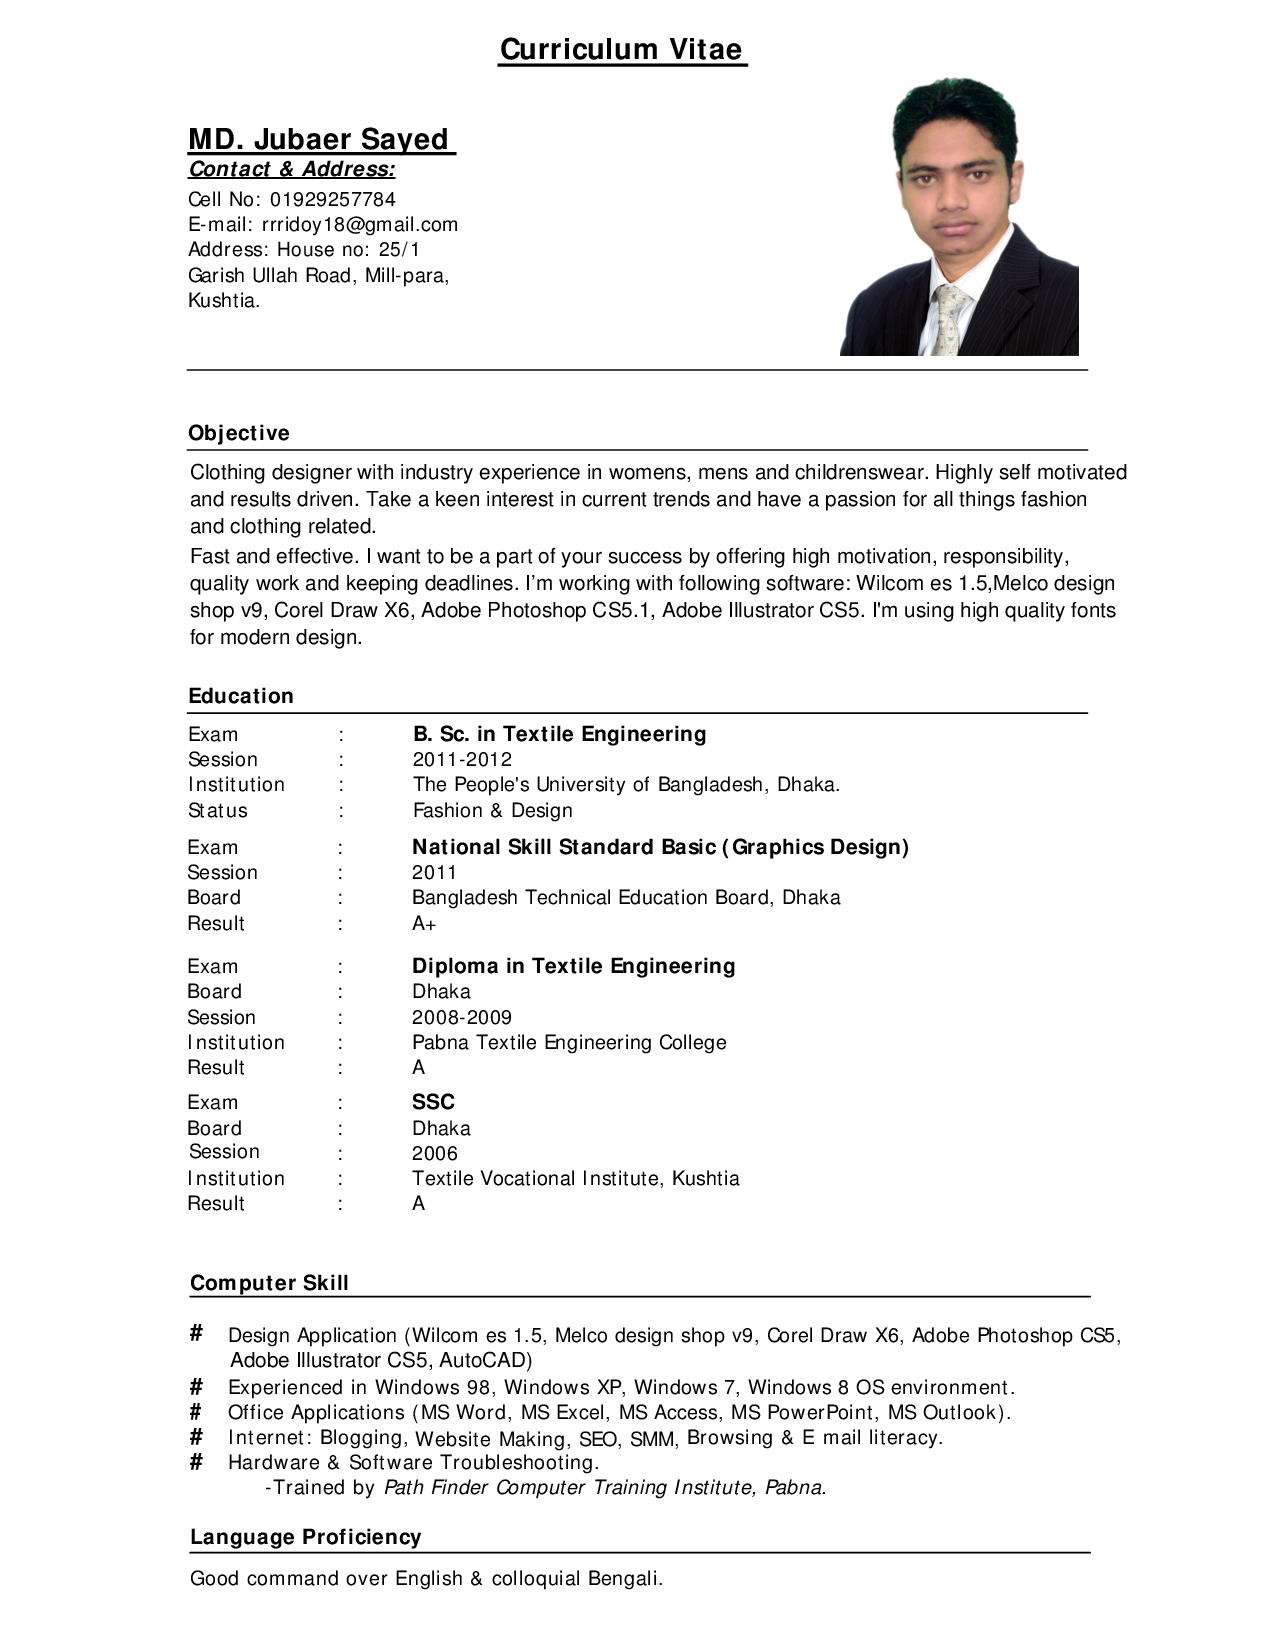 Example Resume, Computer Skills And Education For